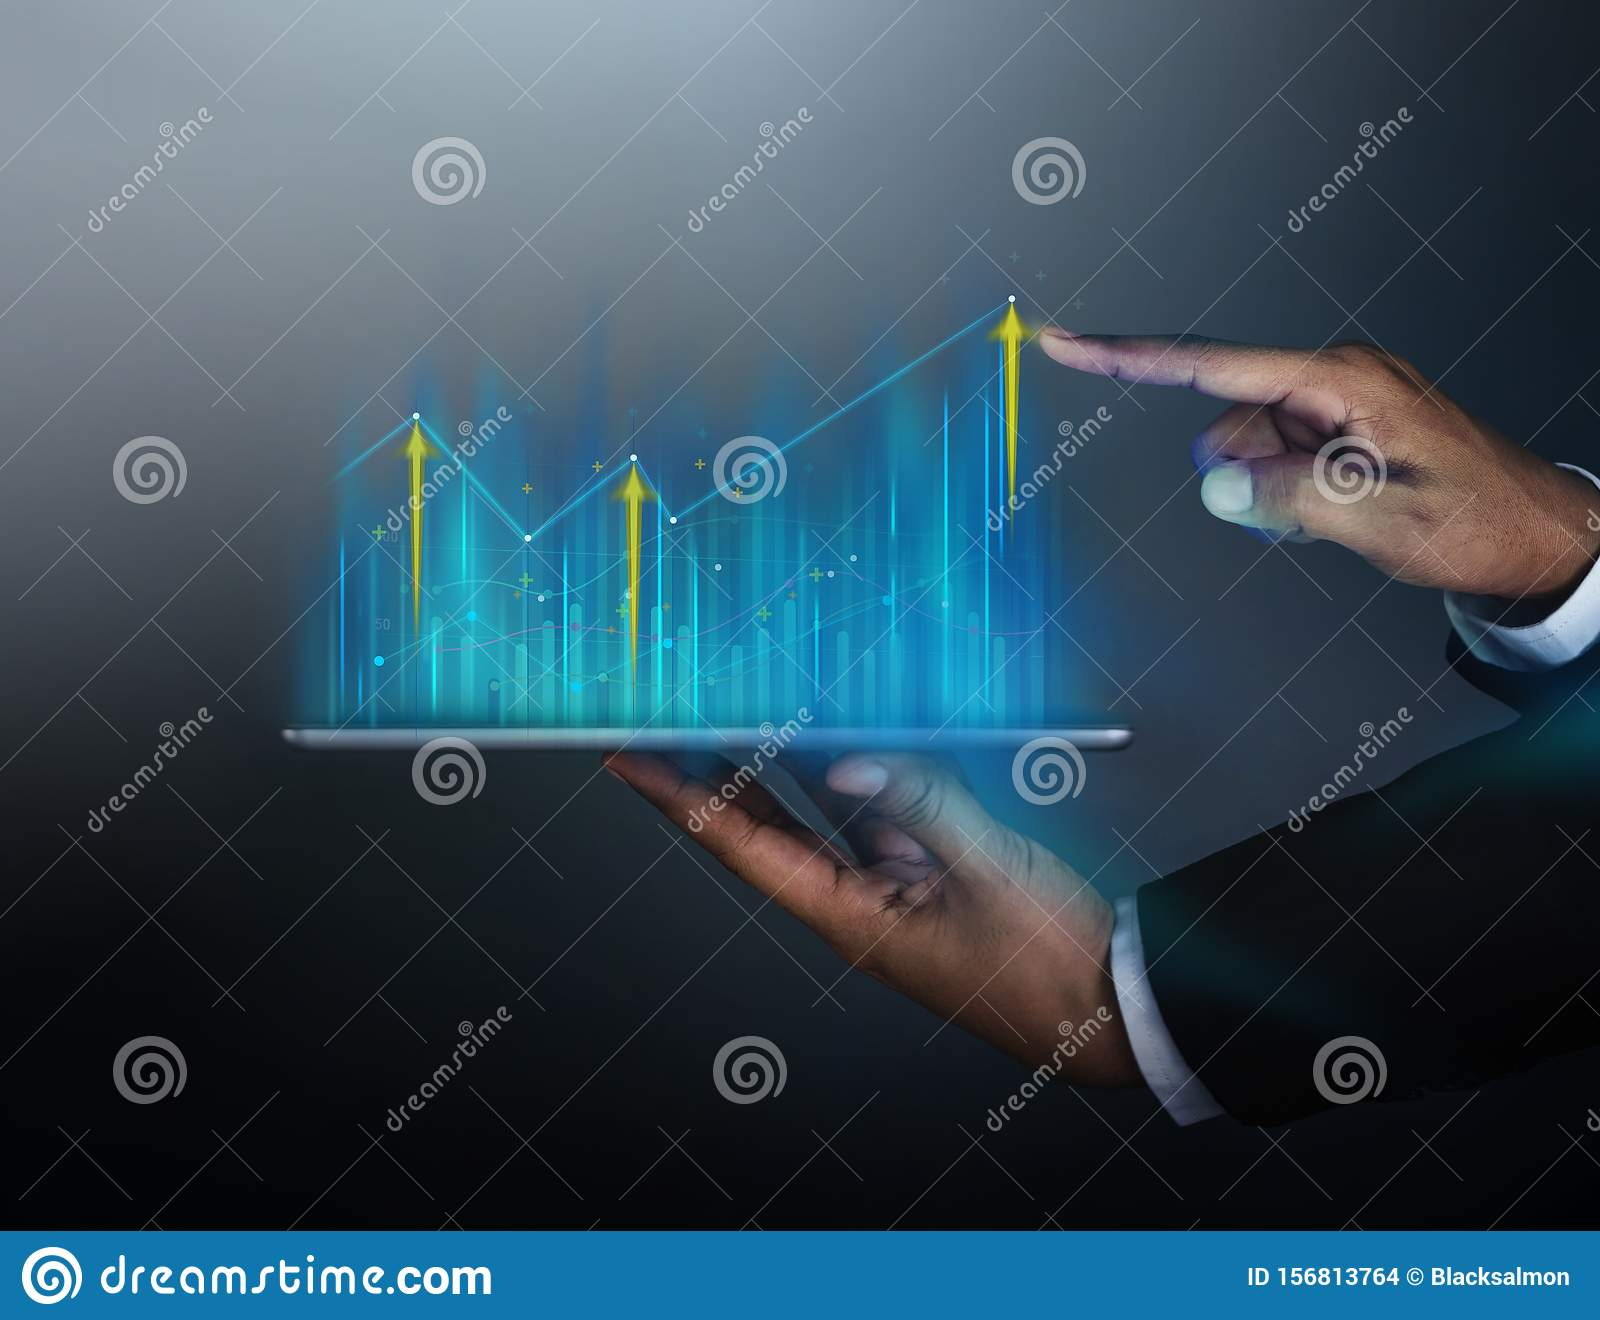 Technology, High Profit, Stock Market, Business Growth, Strategy Planing concept. Businessman in Suit Touching High Graphs and